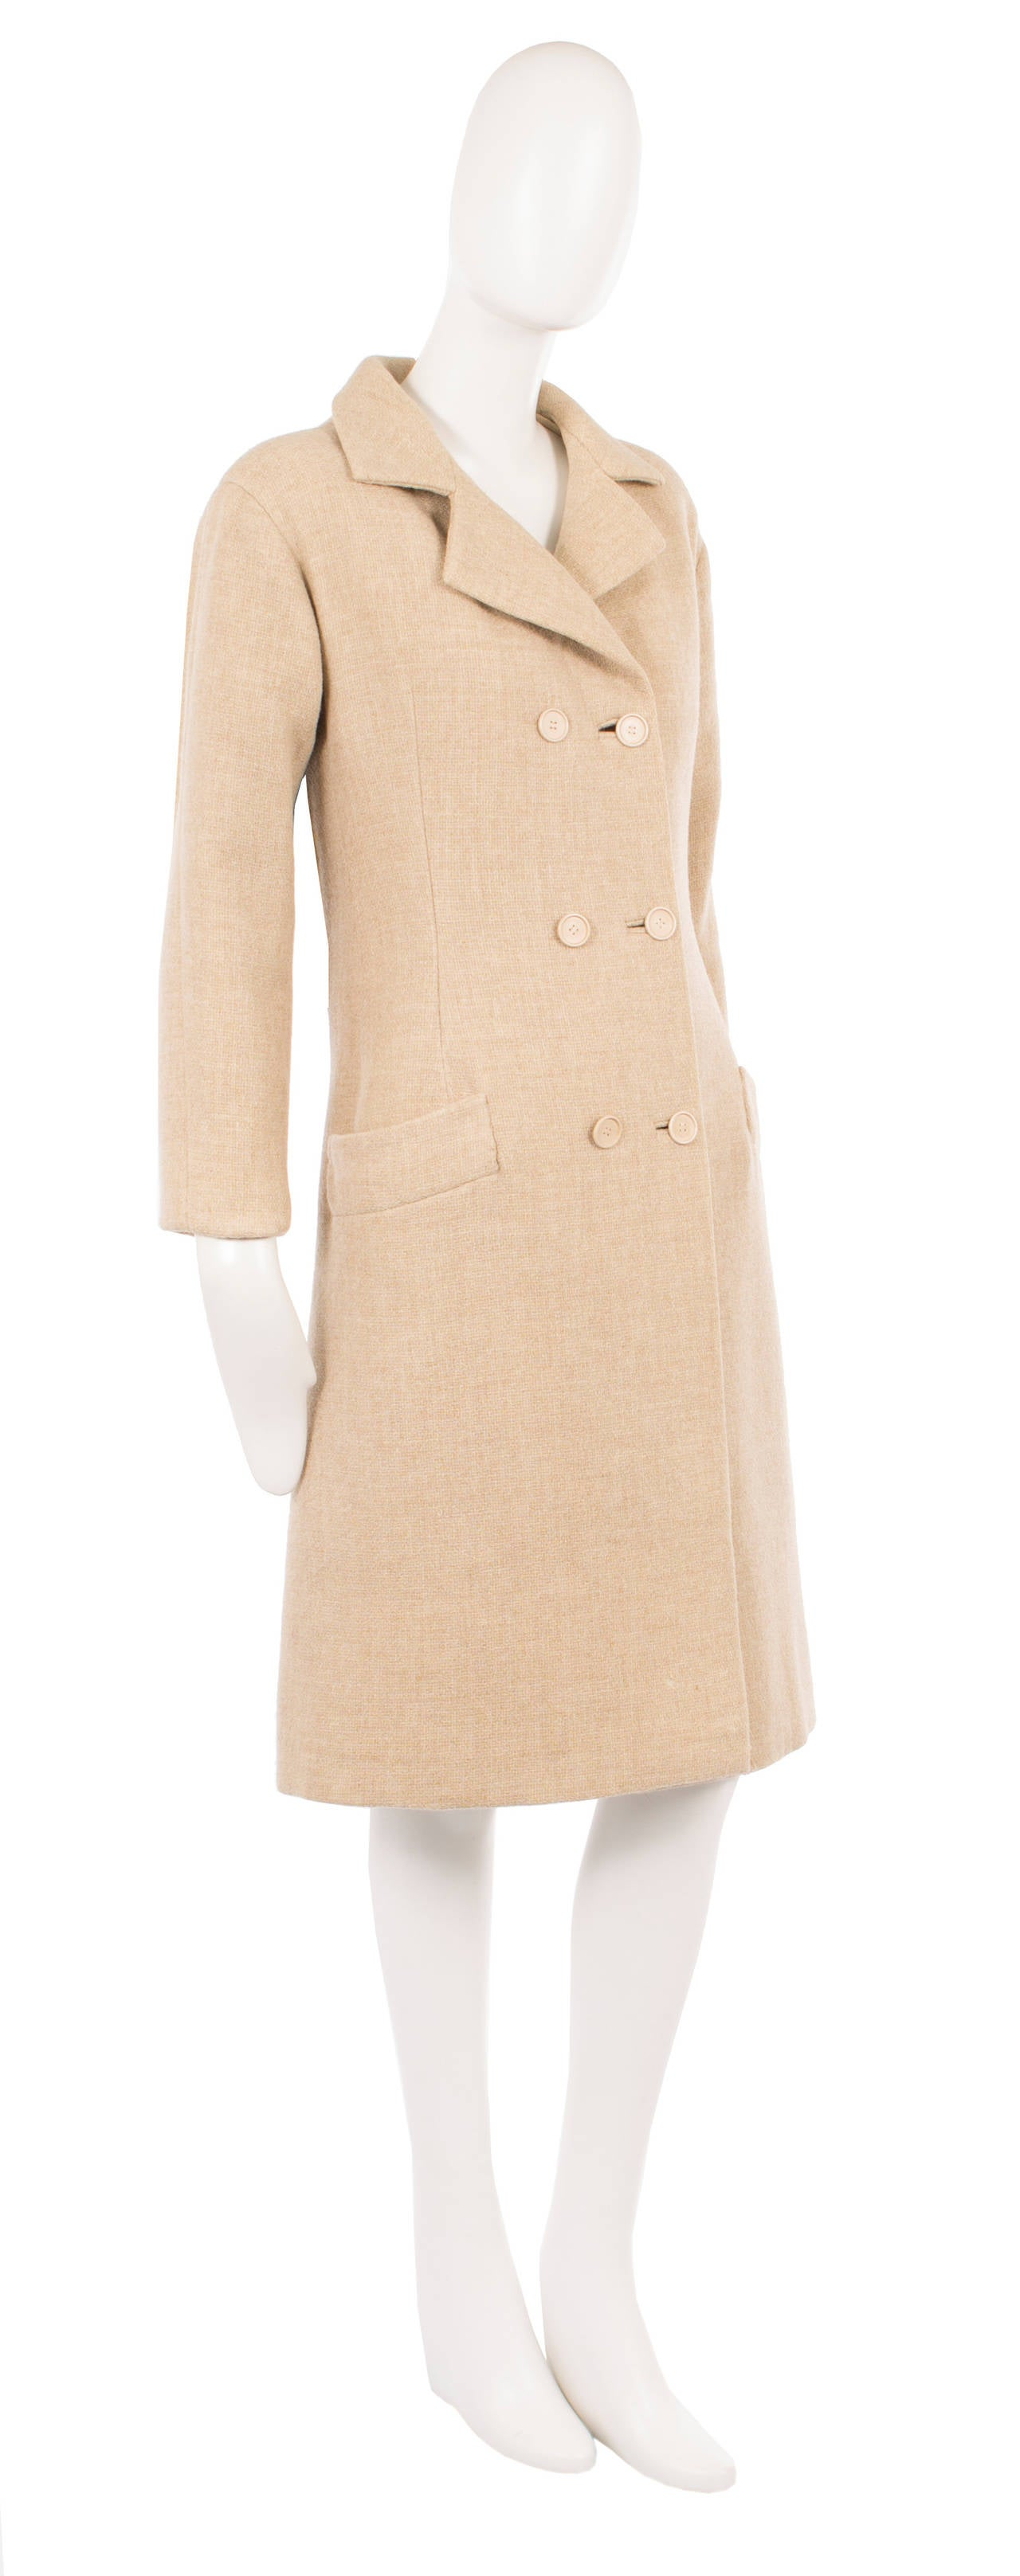 This sharply tailored haute couture coat by Balenciaga for his Eisa label will be sure to become a wardrobe staple. Constructed in a gorgeous shade of oatmeal wool the double-breasted coat features a double lapel collar and a half belt to the rear.